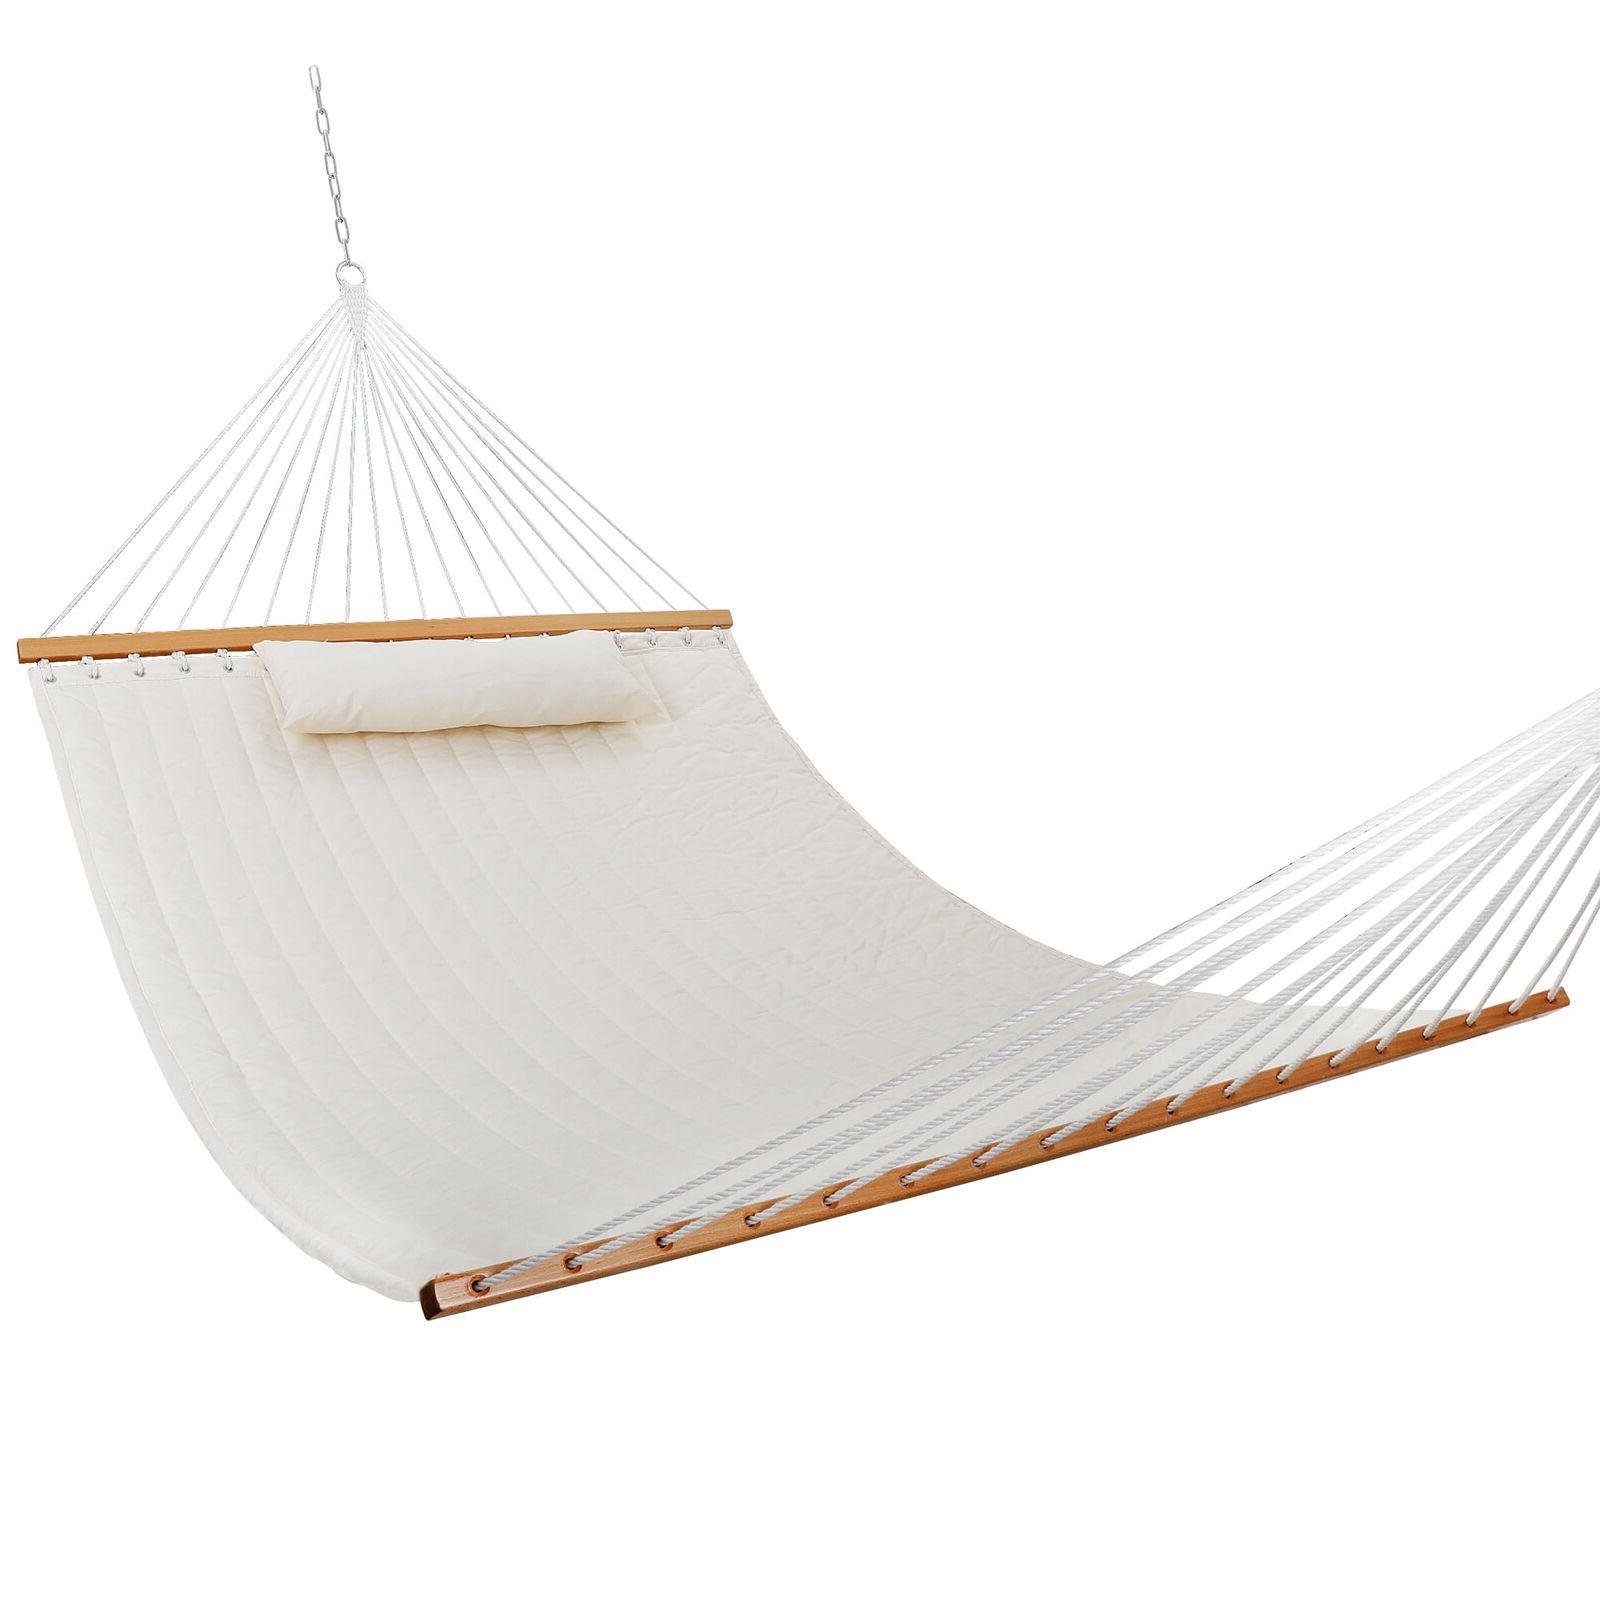 double hammock quilted fabric sleeping bed swing